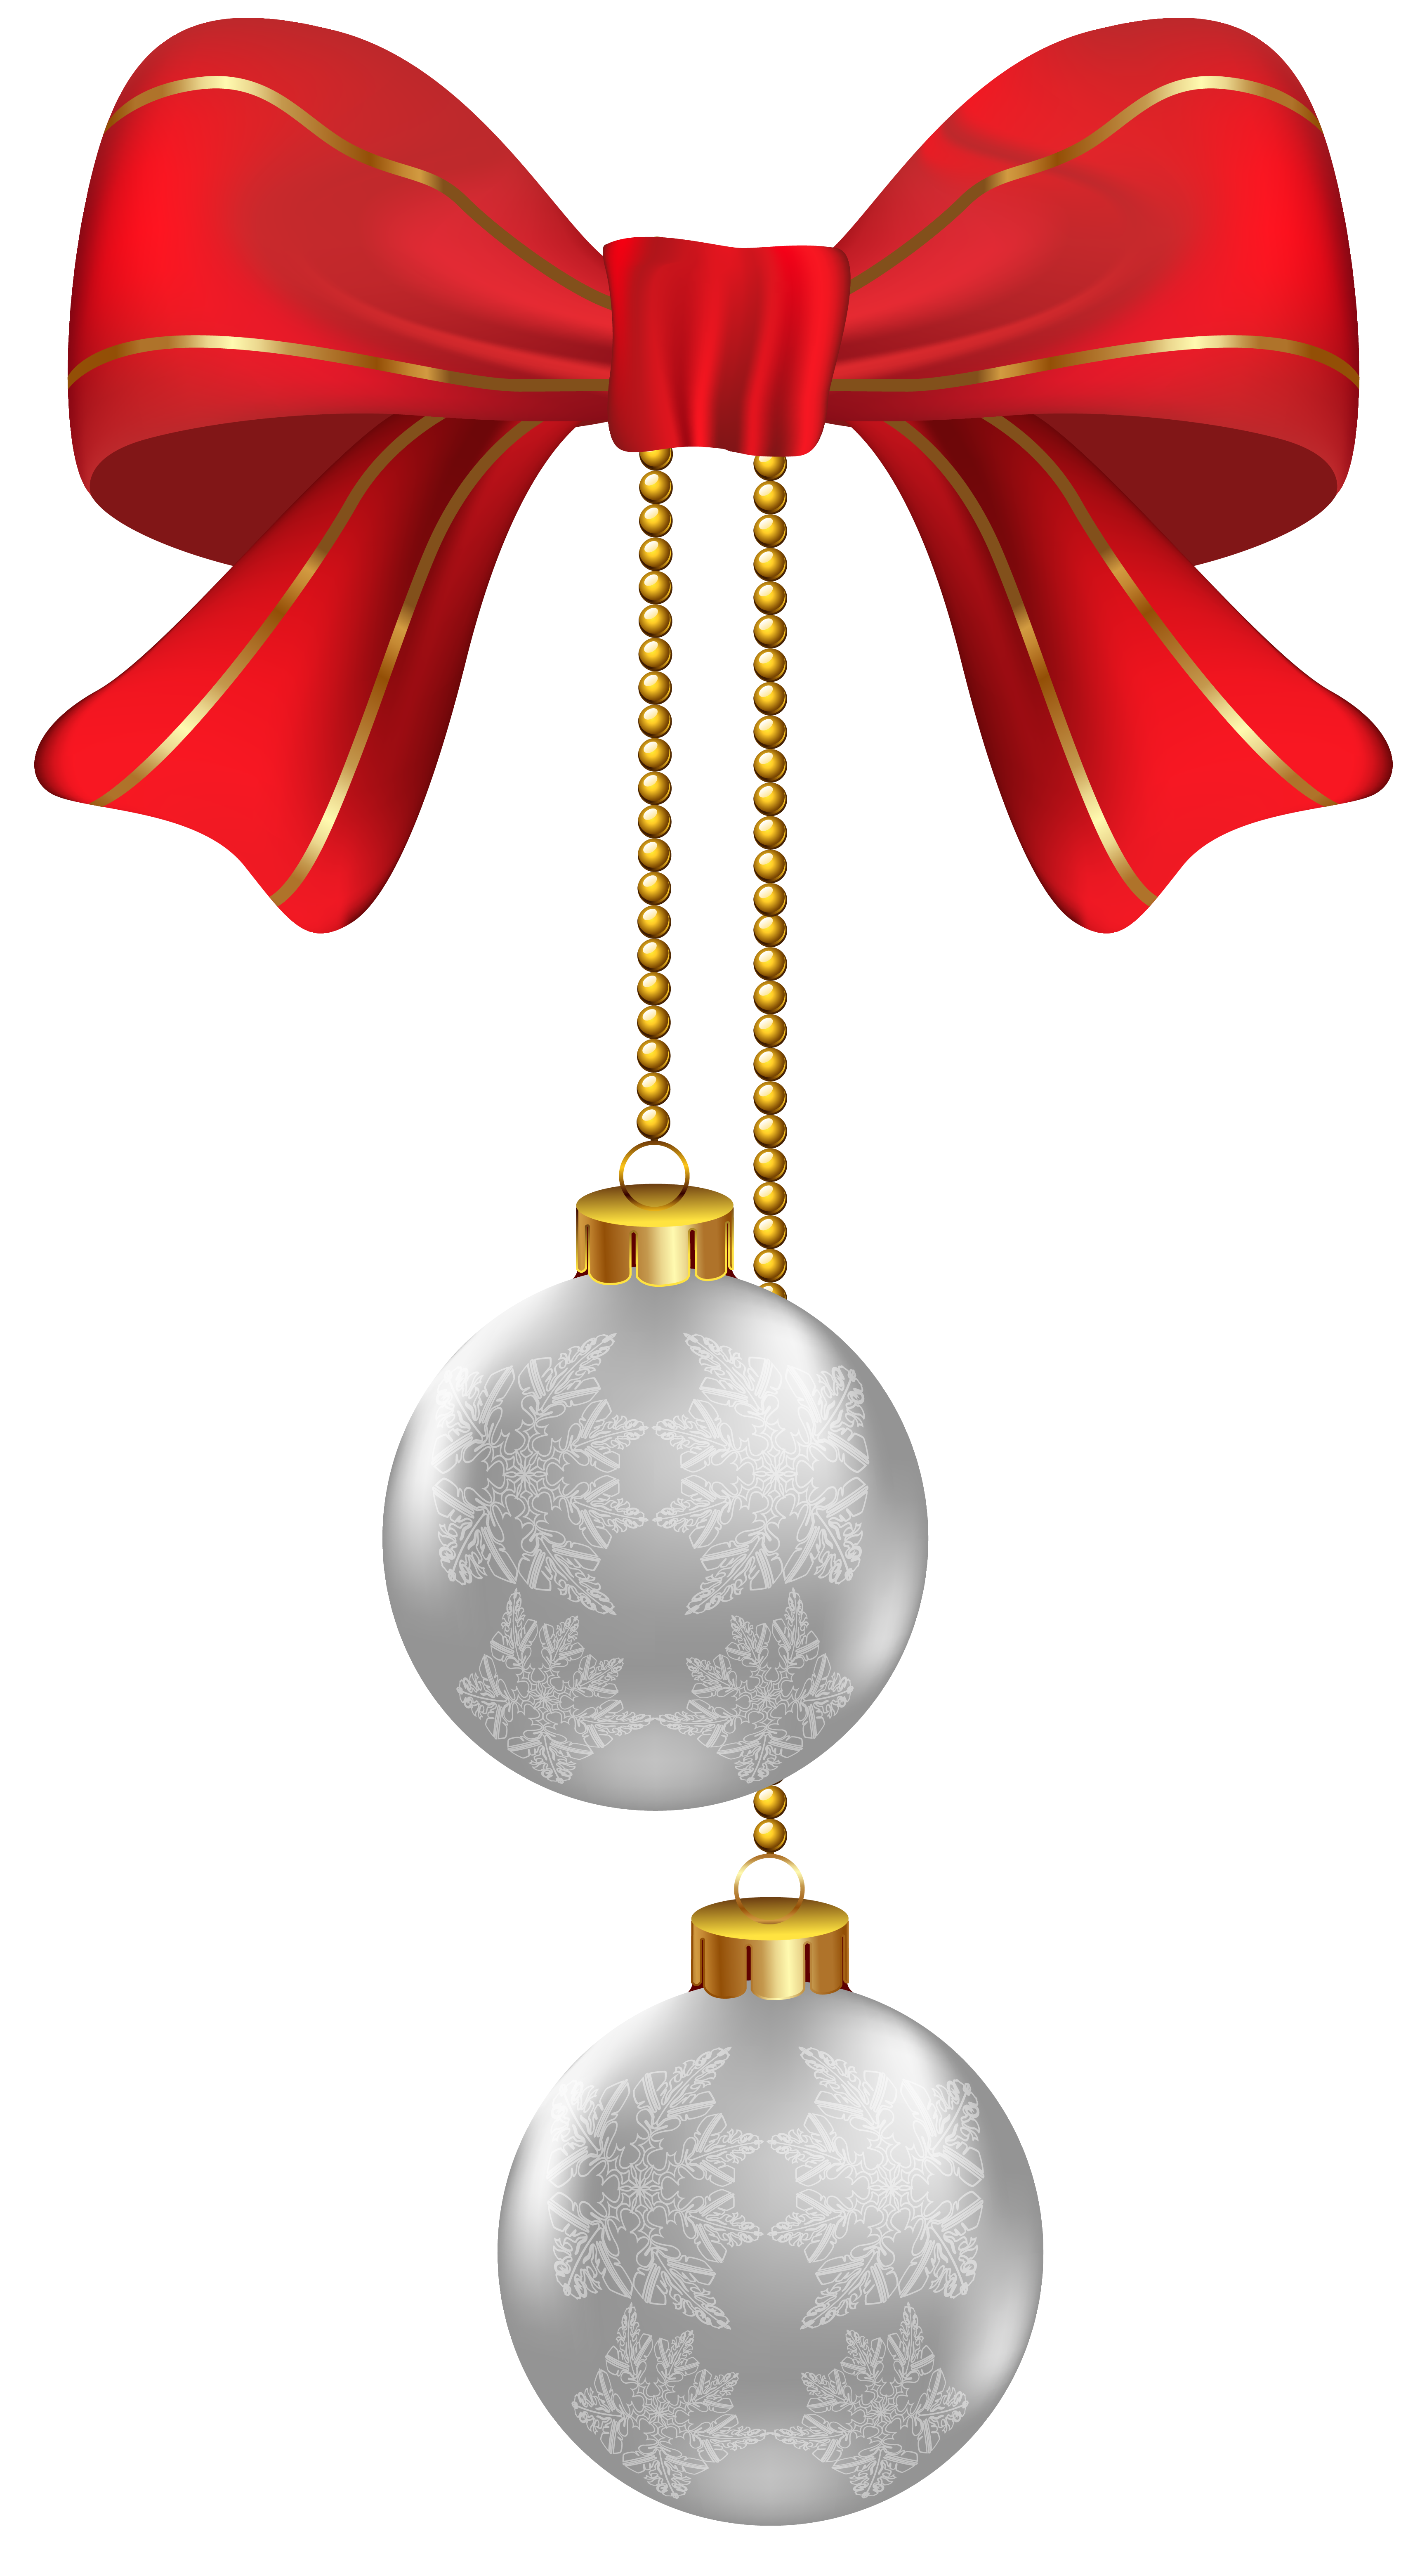 3459x6242 Hanging Christmas Silver Ornaments Png Clipart Imageu200b Gallery